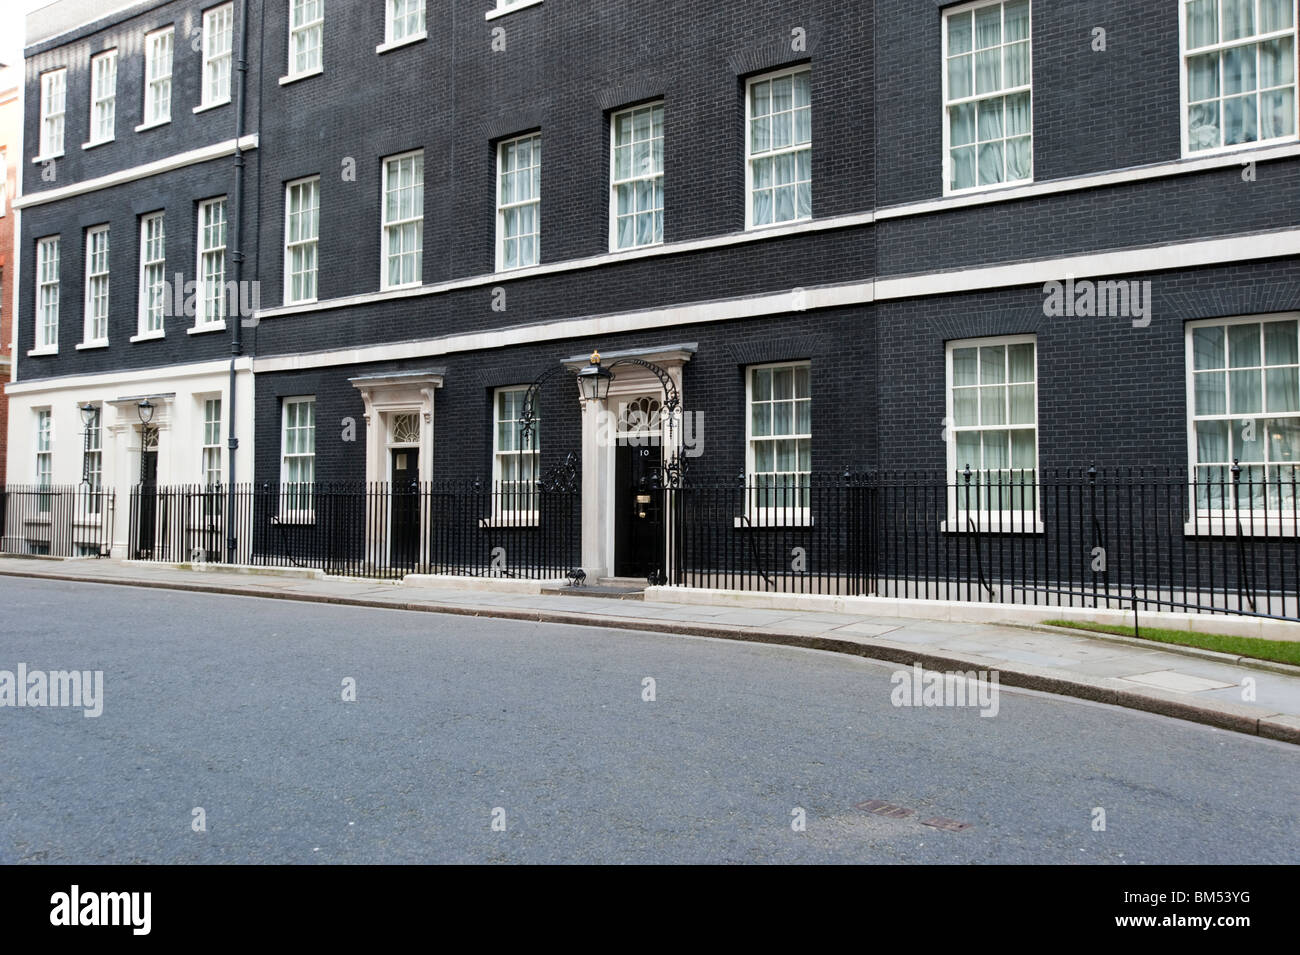 10 Downing Street, London, England, Regno Unito Immagini Stock